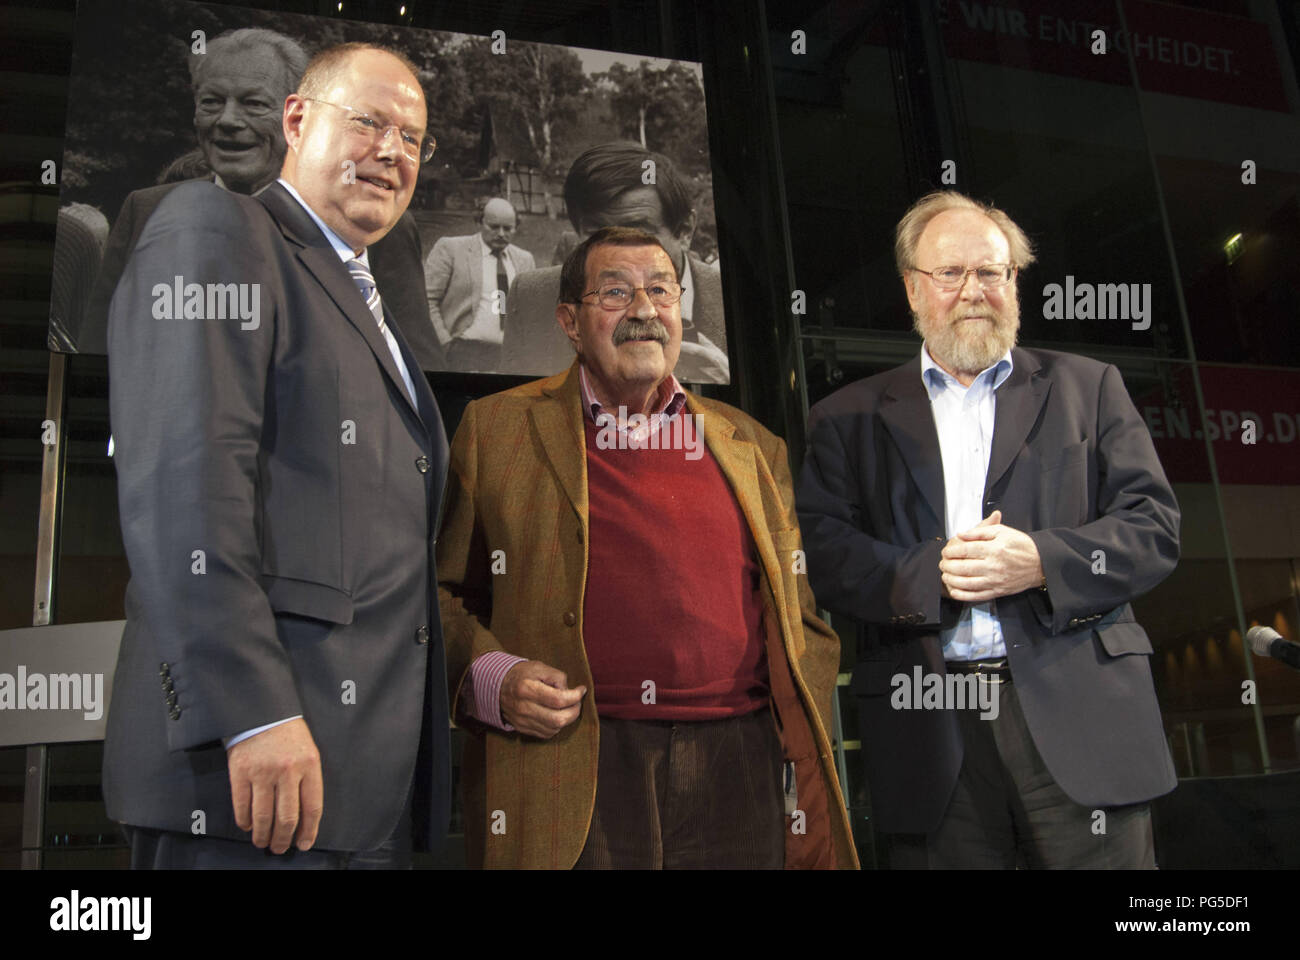 Berlin, GER, 26.06.2013:  Pictured left to right: Portrait Peer Steinbrueck, german politician and chancellor candidate of SPD, Guenter Grass, german writer and Wolfgang Thierse, german politician of SPD at the book presentation in Willy-Brandt-House: 'Willy Brandt and Guenter Grass: The letter exchange' with Guenter Grass, writer and Peer Steinbrueck, SPD-politician and chancellor candidate. Read by Burghart Klaussner and Dieter Mann, actors - Stock Image